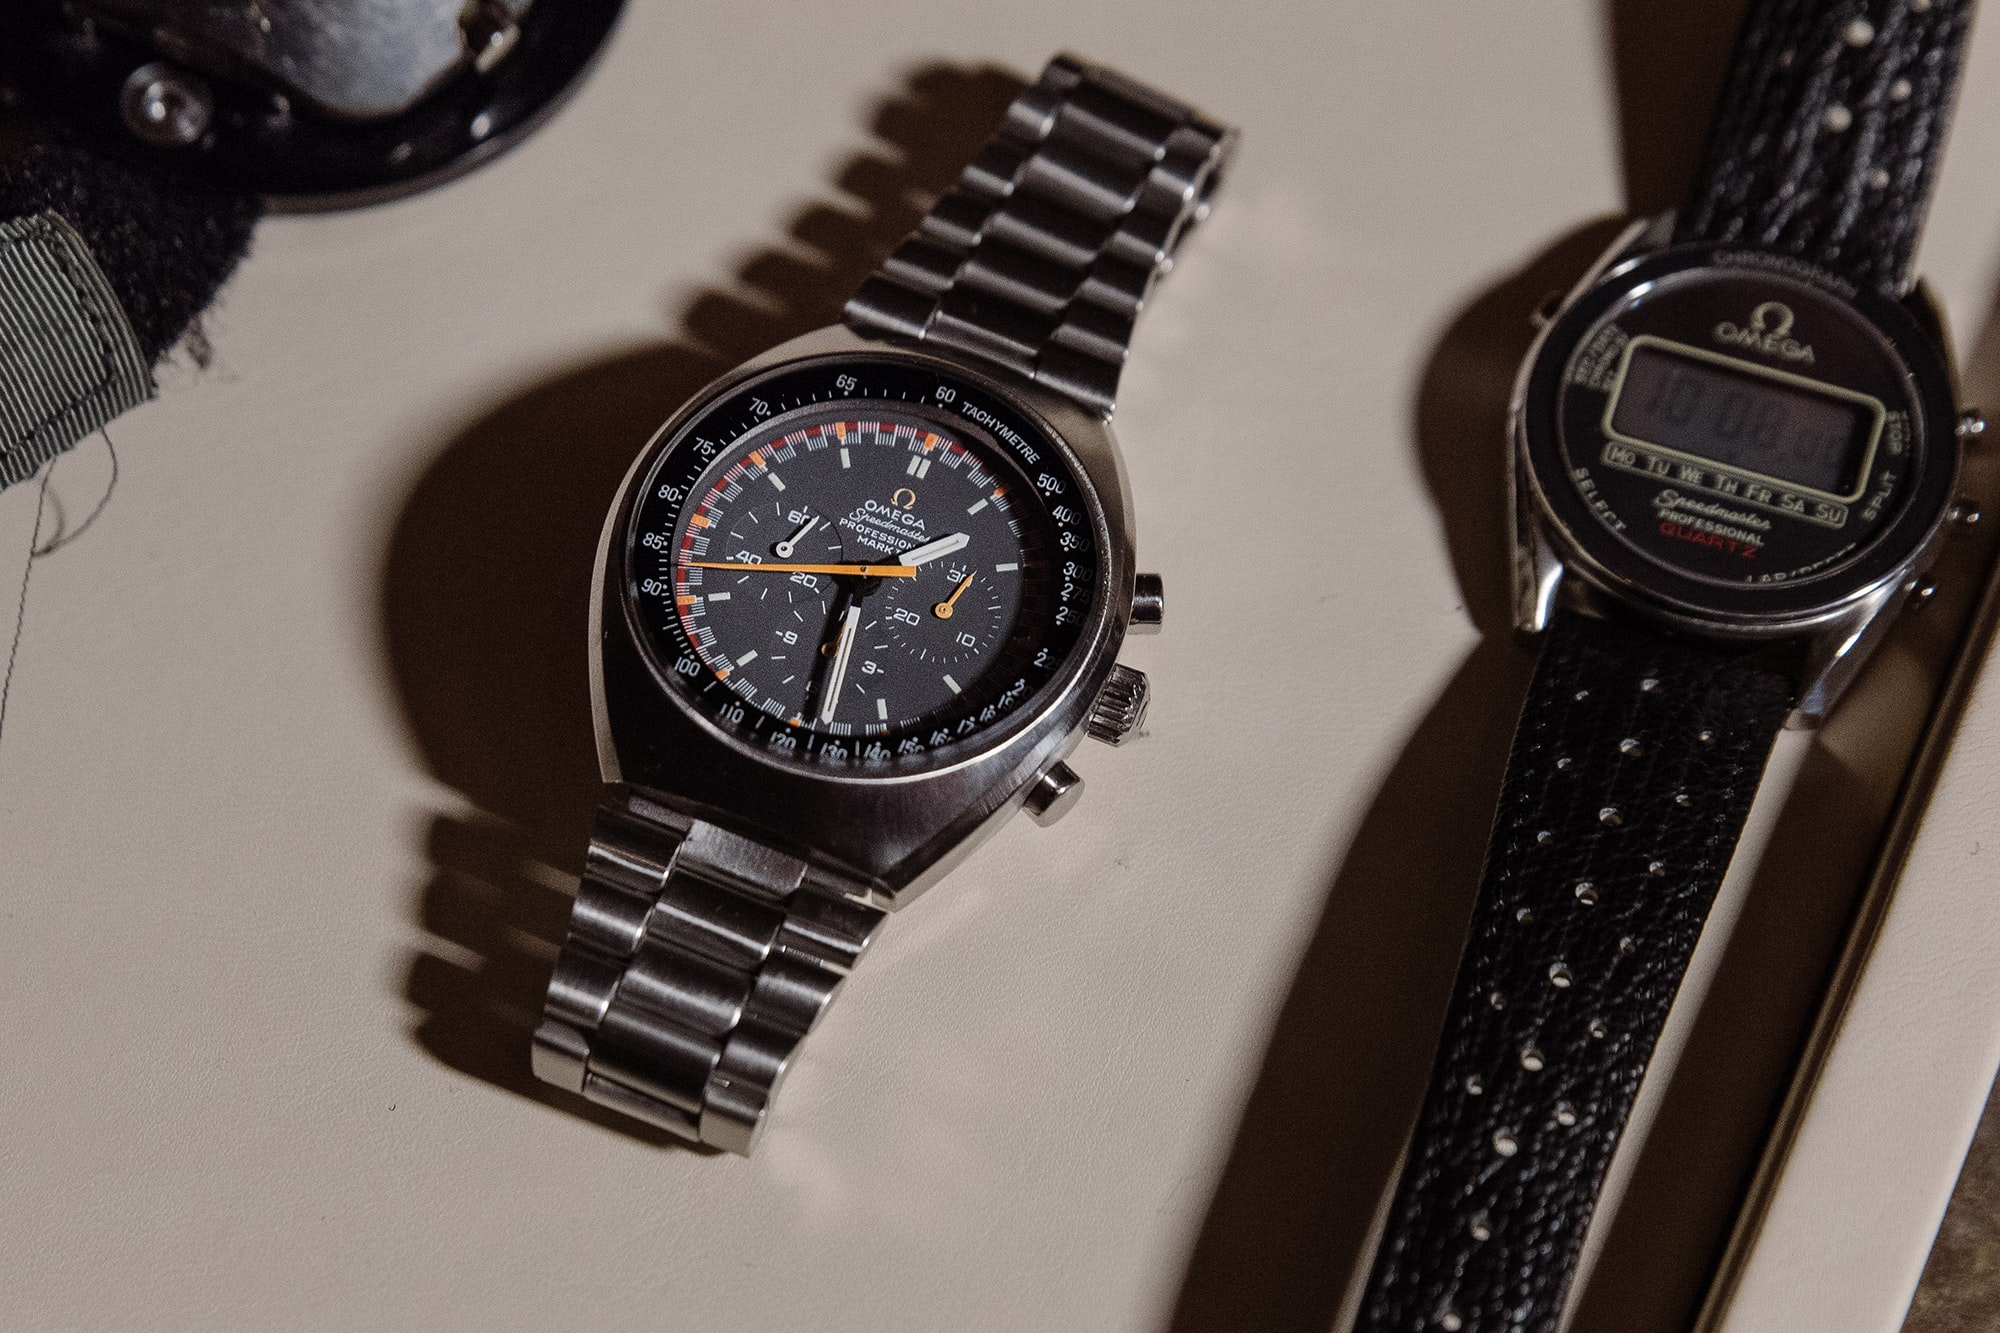 Photo Report: HODINKEE And Omega Celebrate The 60th Anniversary Of The Speedmaster Photo Report: HODINKEE And Omega Celebrate The 60th Anniversary Of The Speedmaster  20170221 OmegaSpeedmaster60th 135